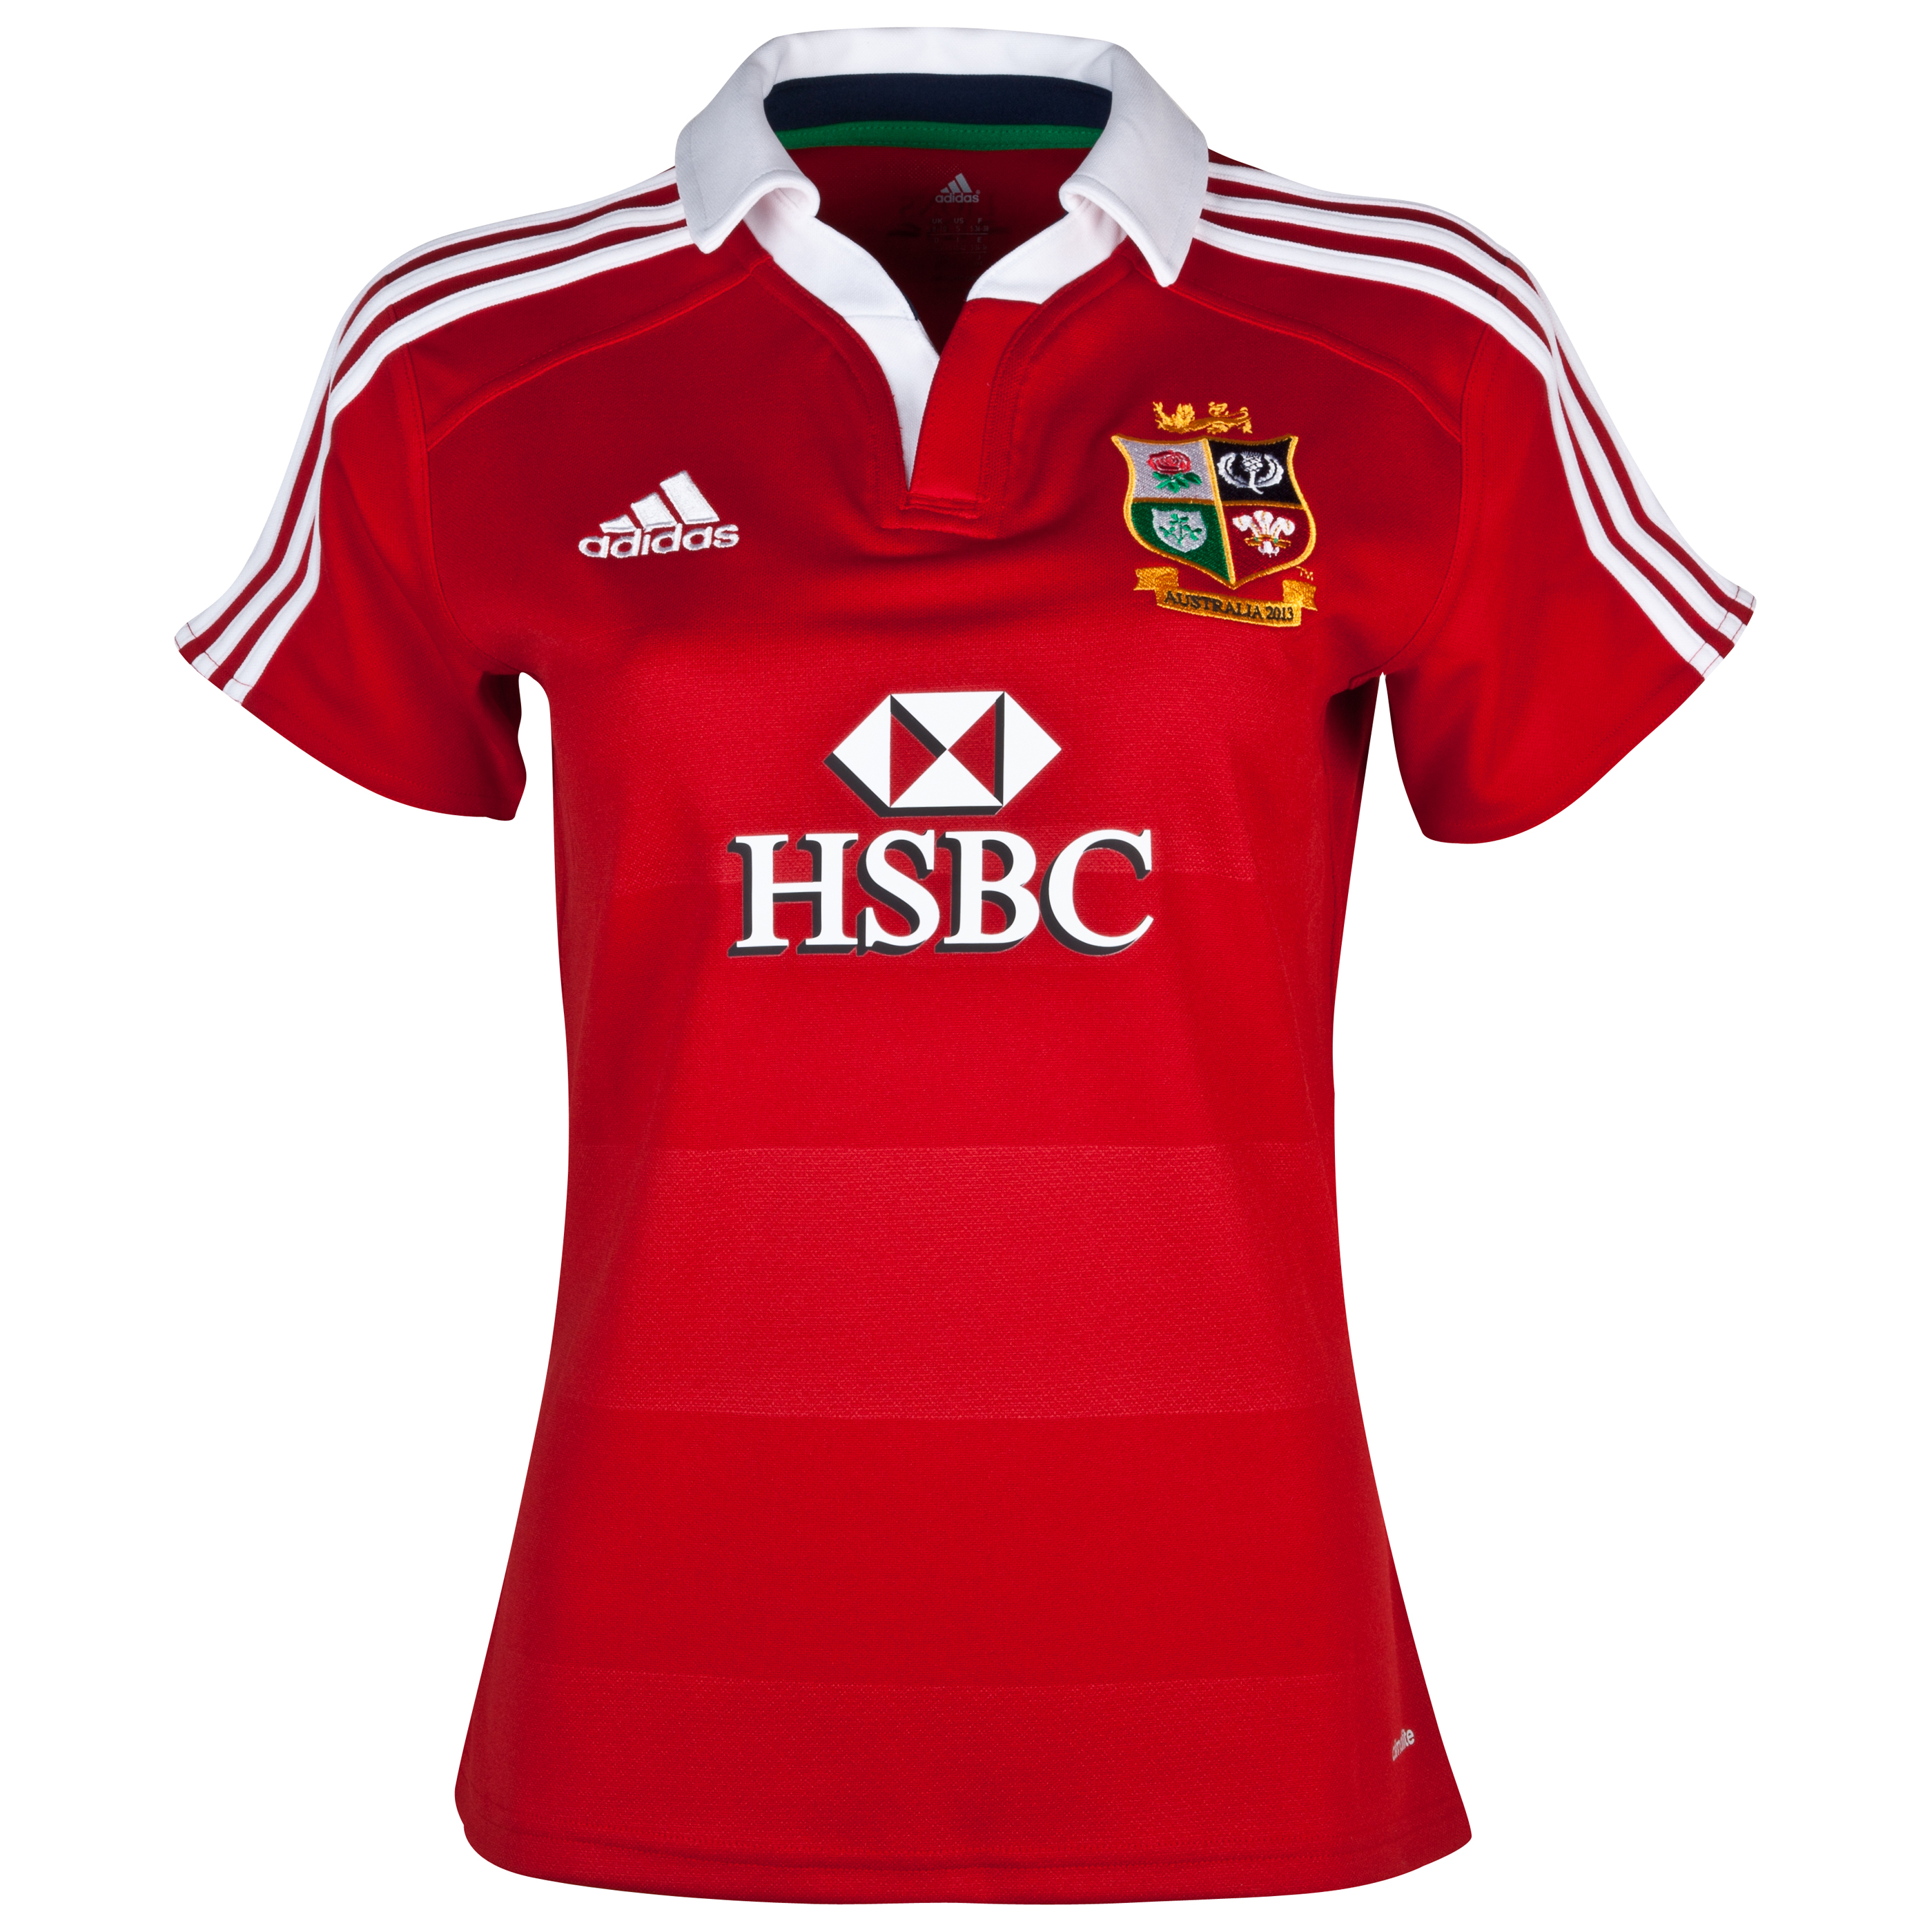 adidas British and Irish Lions Home Shirt 2013 - Womens